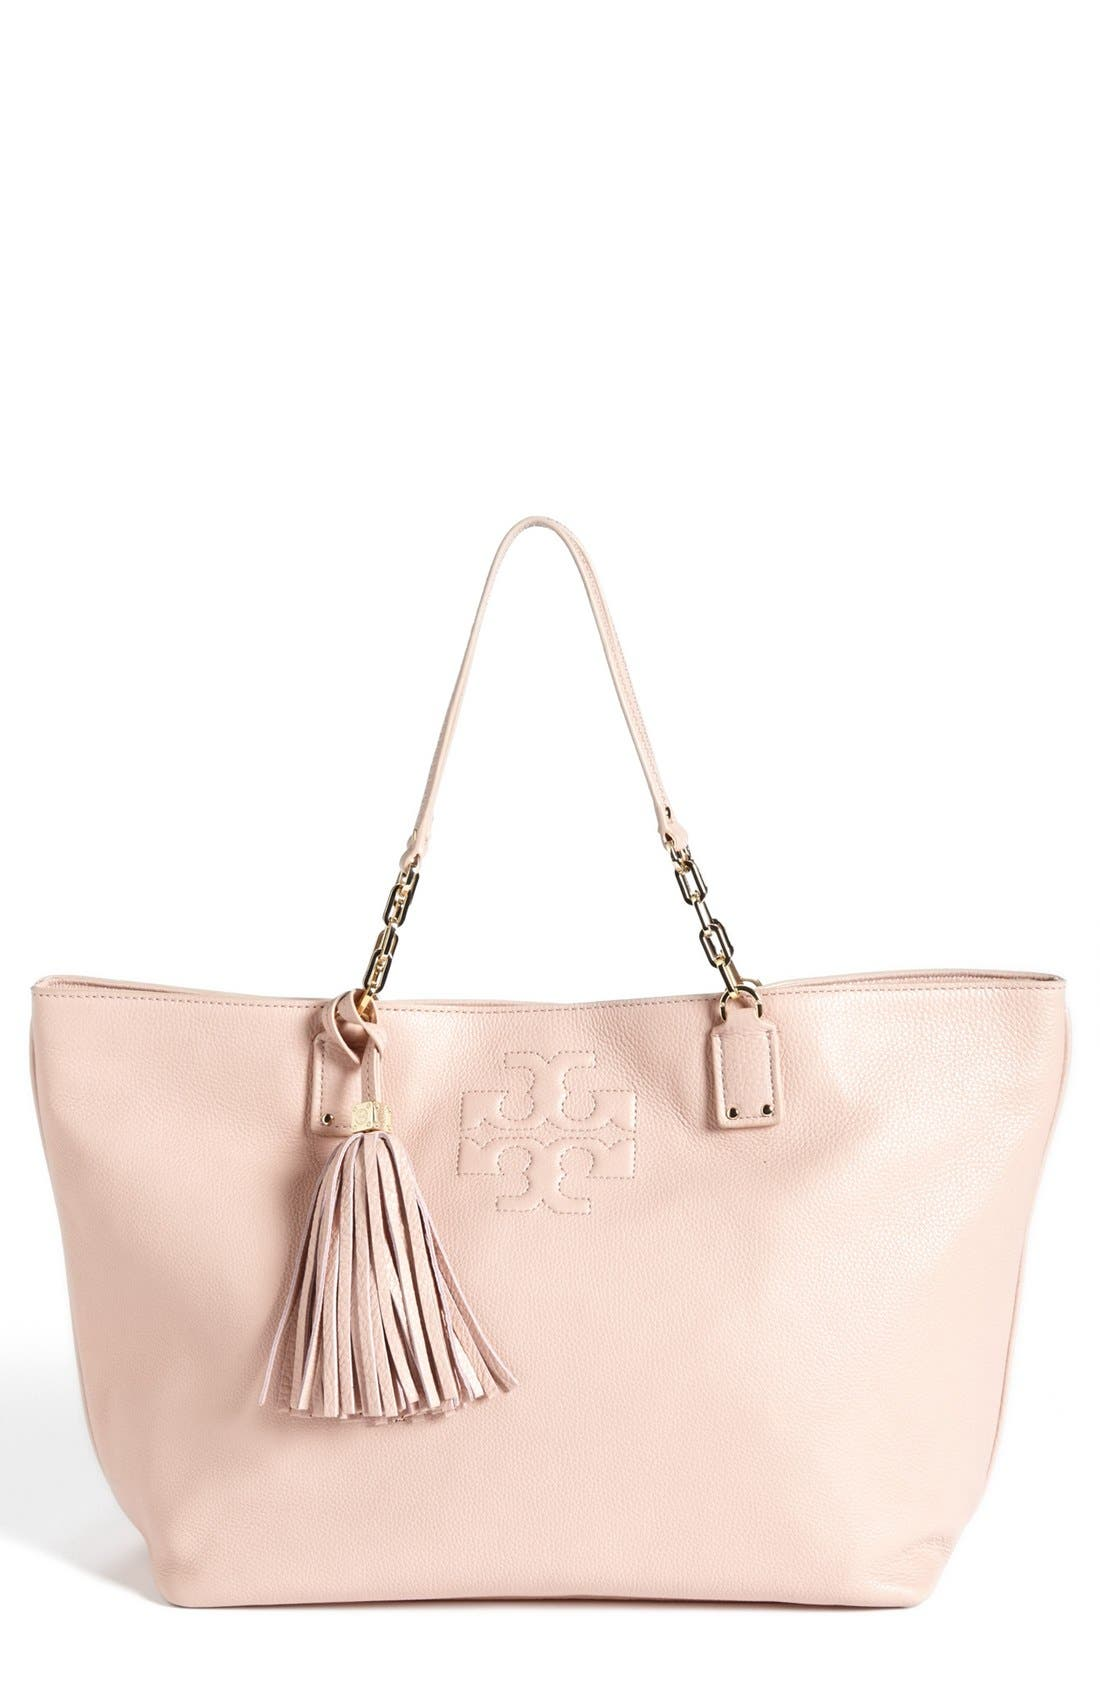 Main Image - Tory Burch 'Thea' Tote, Large